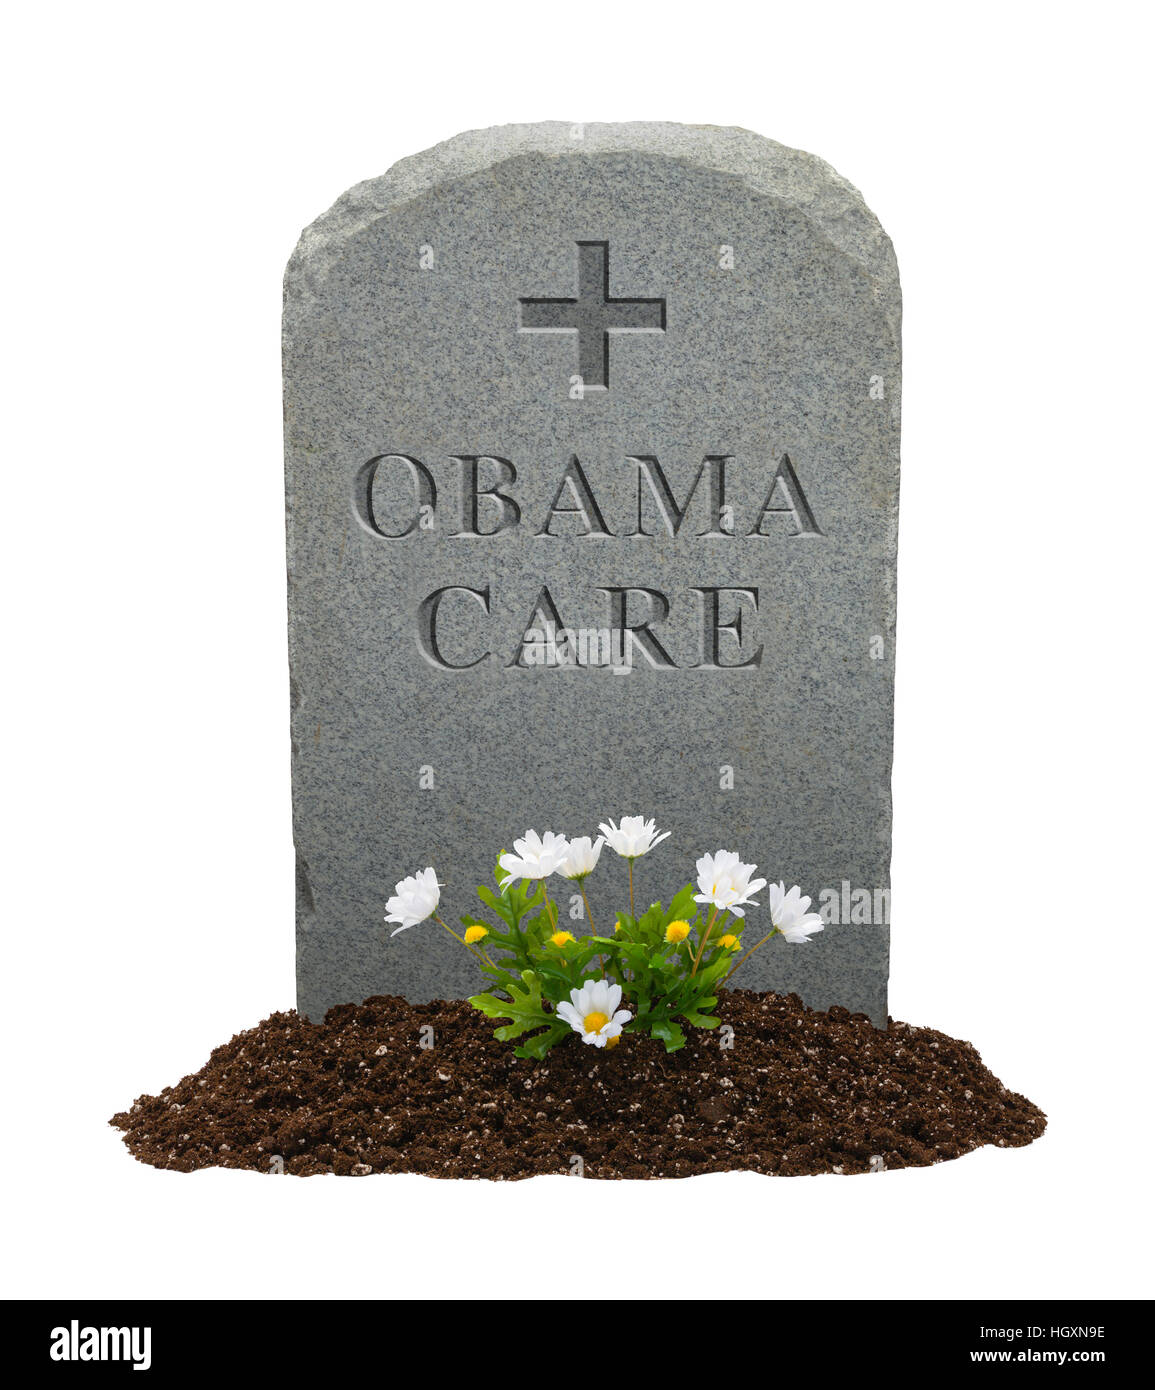 Gravestone with Obamacare on it Isolated on White Background. - Stock Image